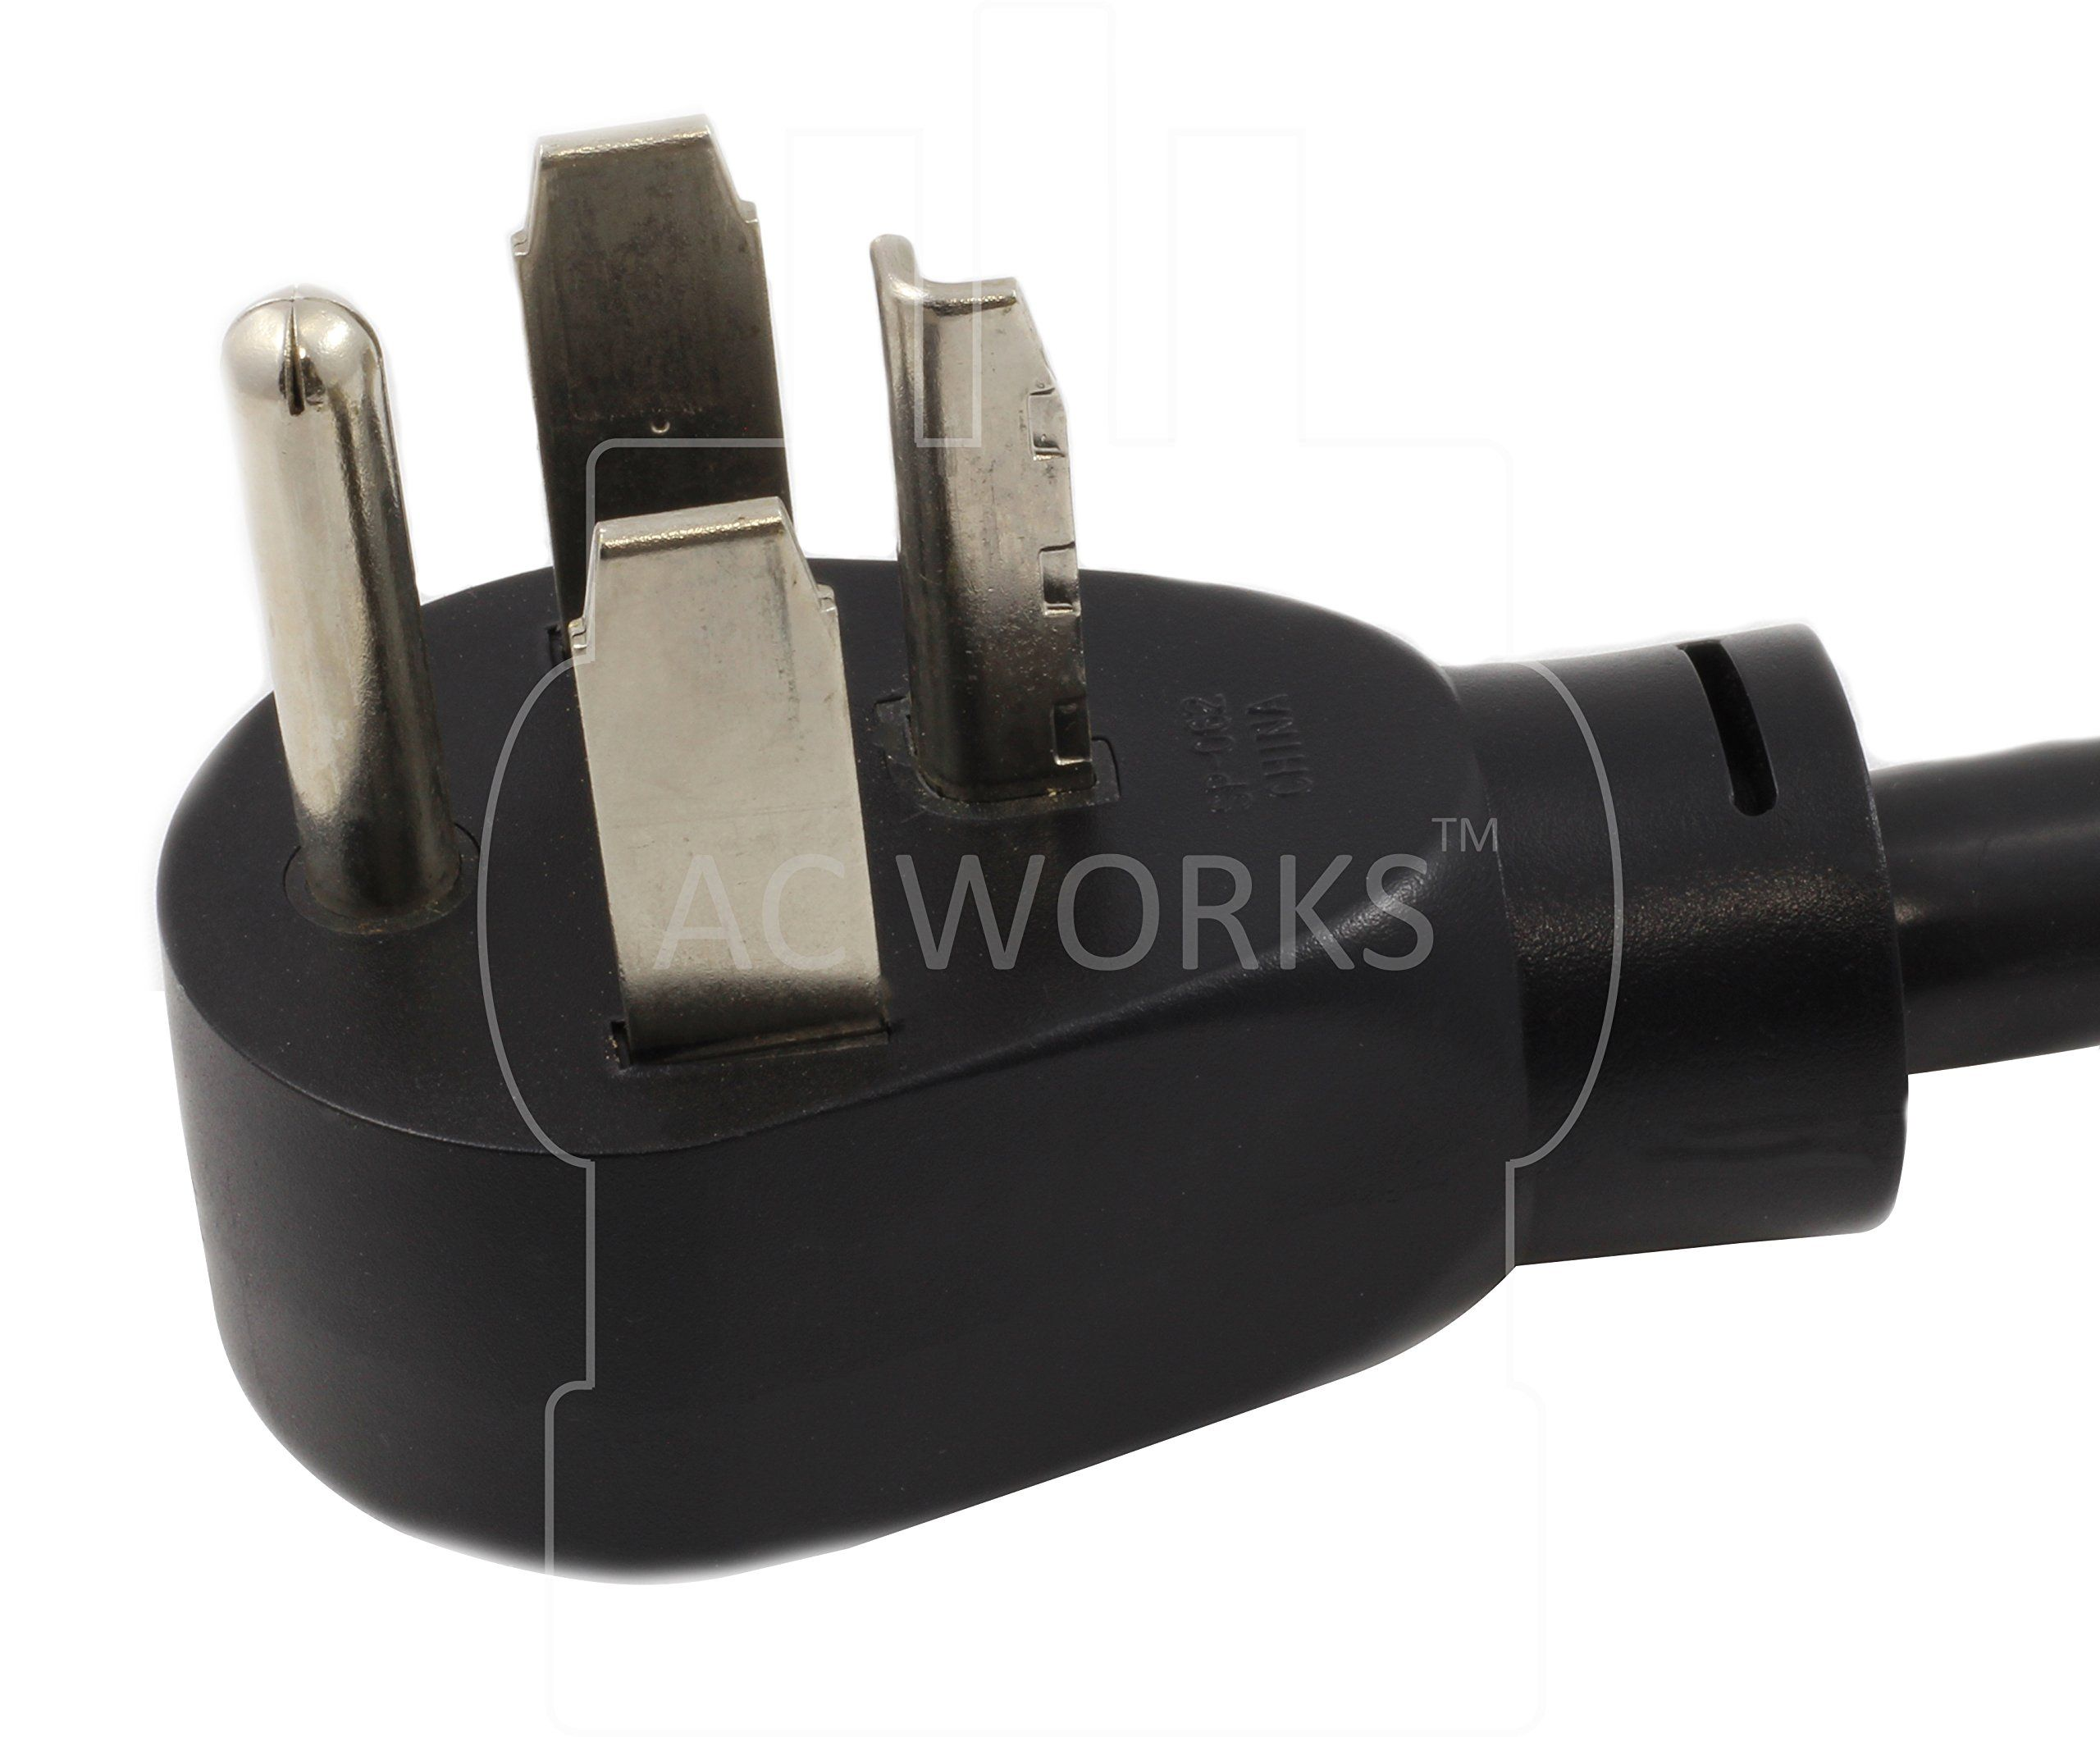 Ac Works S14301030018 4prong Dryer Plug To 3prong Dryer Female Socket Adapter Want Additional Info Click On The Image Thi Dryer Plug Parts Accessories